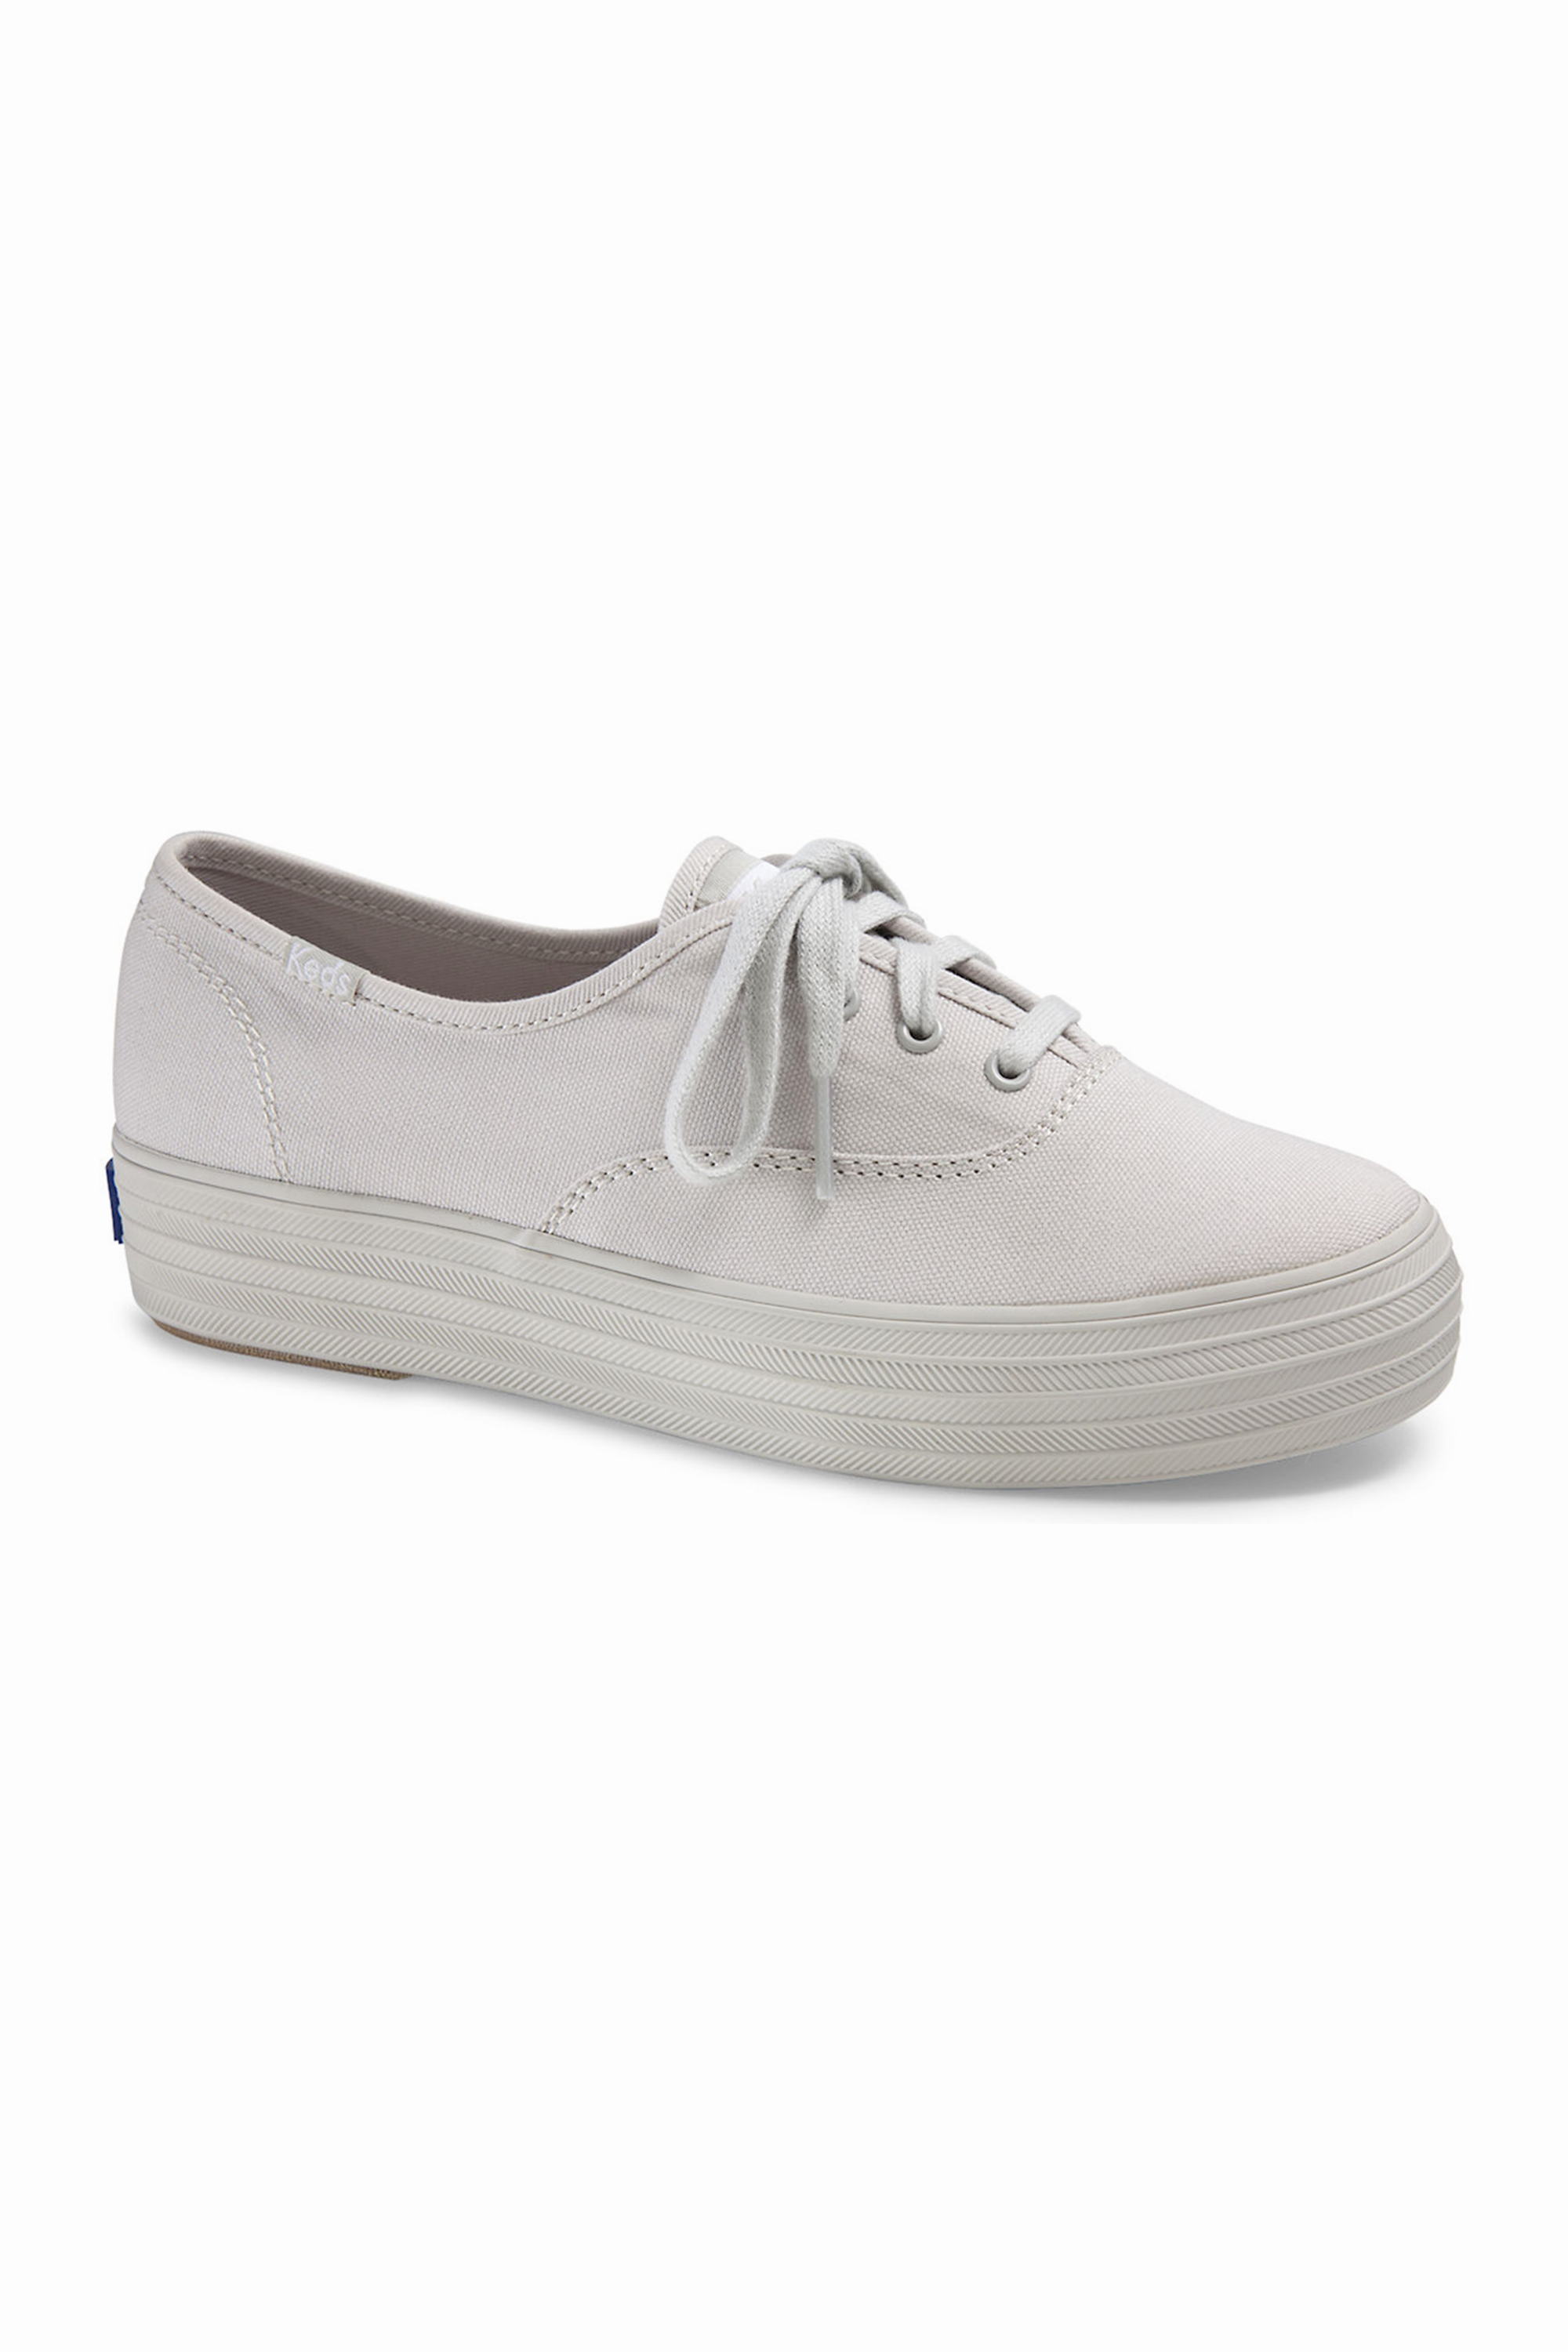 keds shoes white philippines